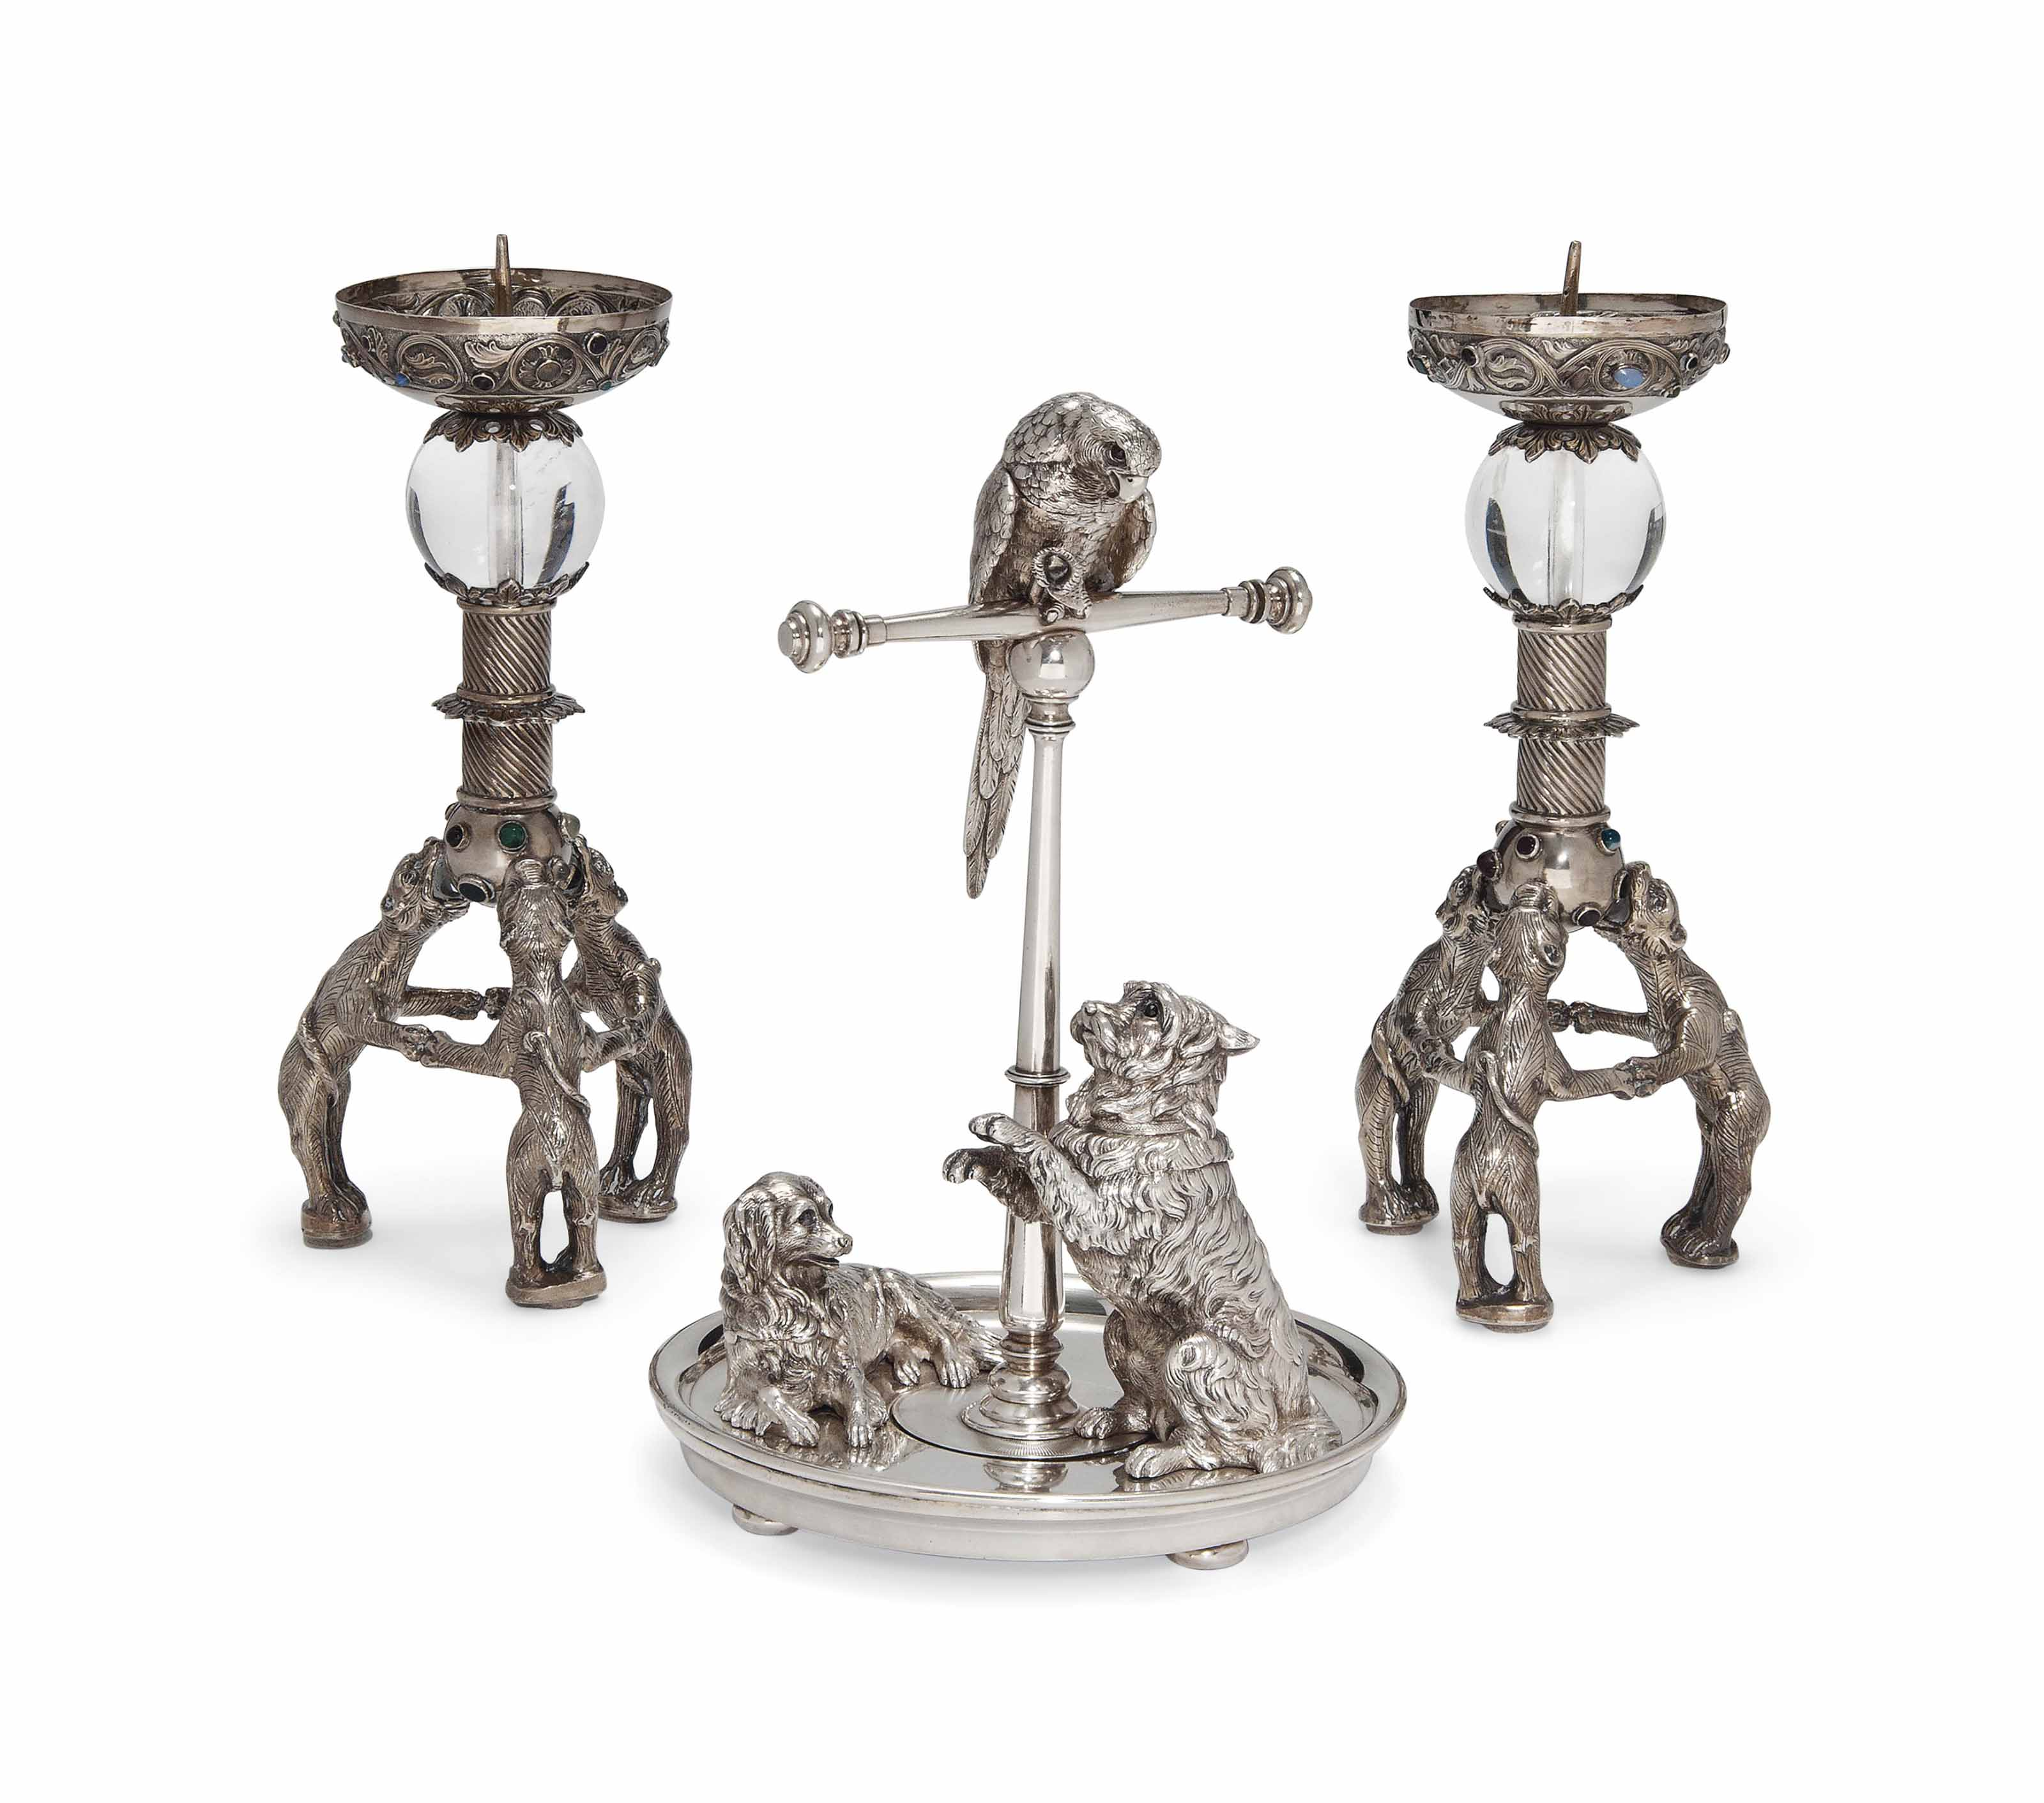 A PAIR OF GERMAN SILVER HISTORISMUS PRICKET CANDLESTICKS